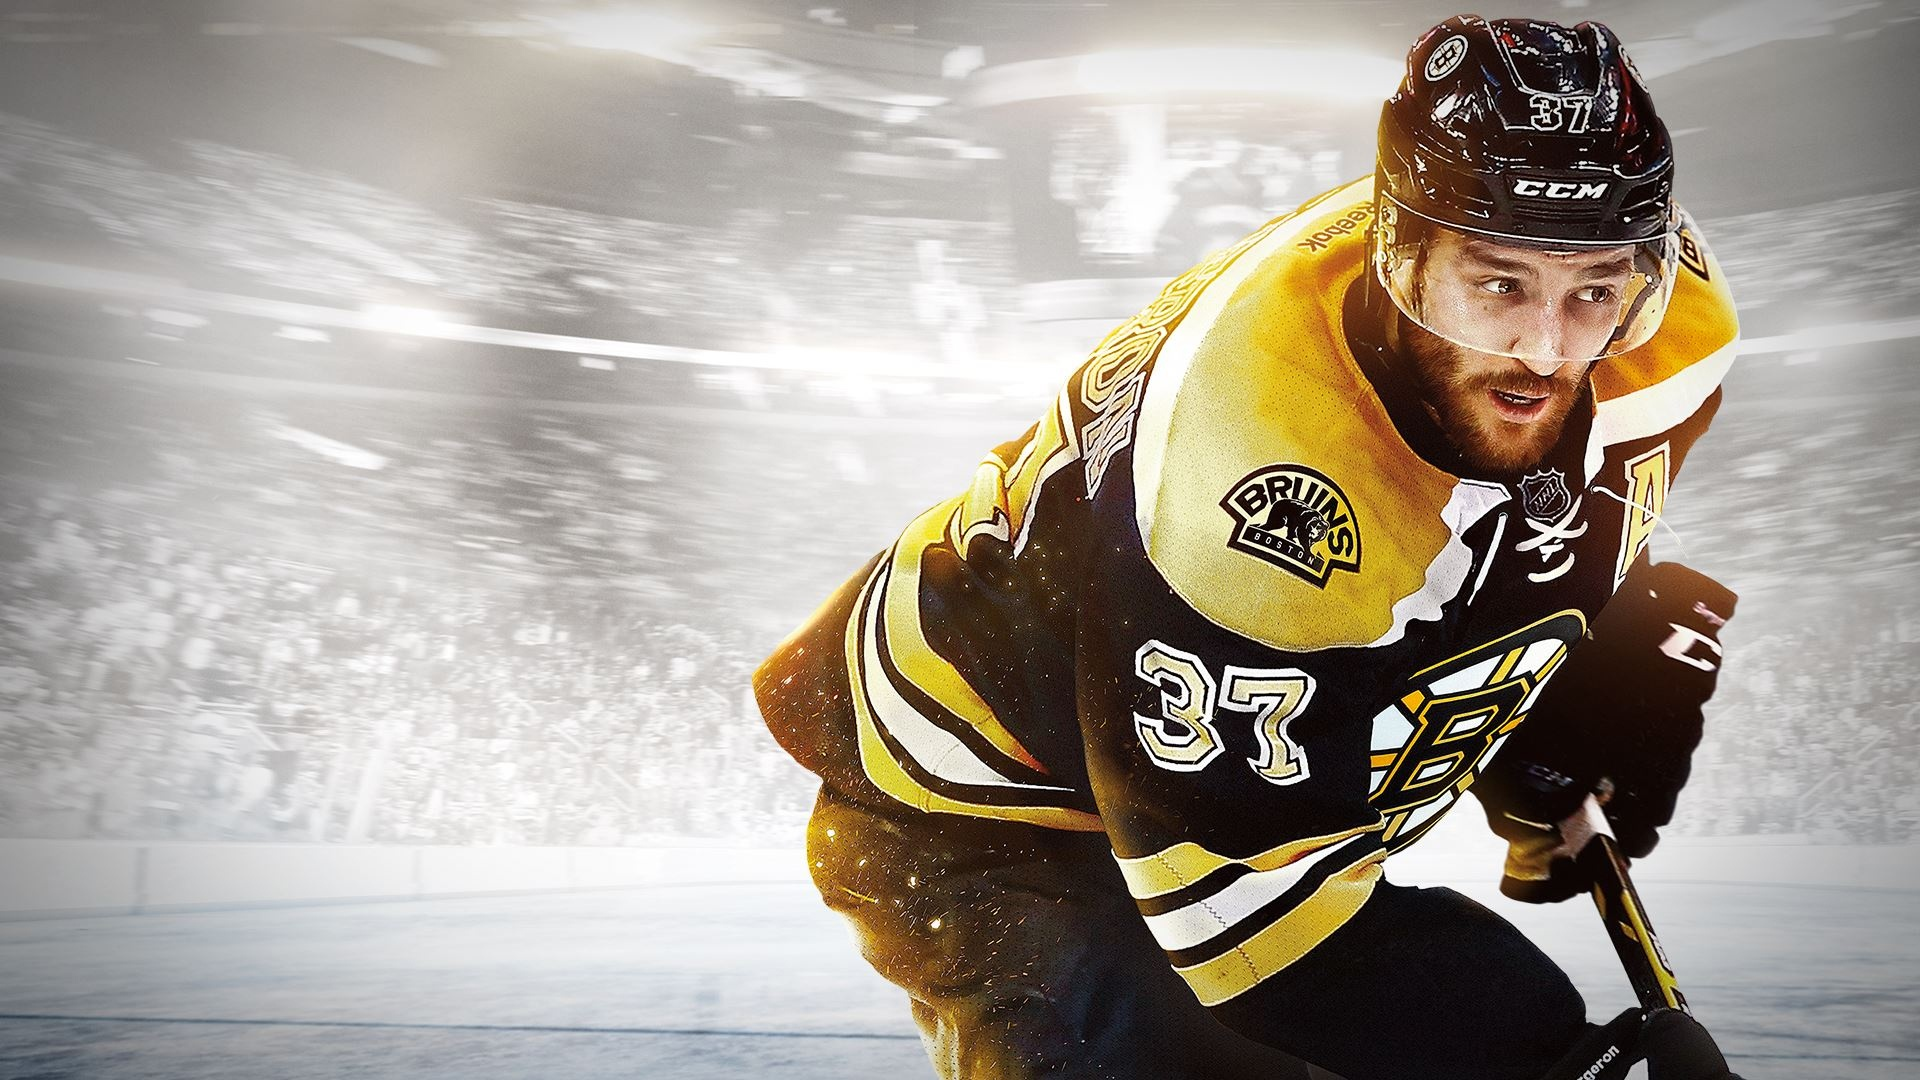 NHL 15 2015 Wallpapers - 1920x1080 - 581861